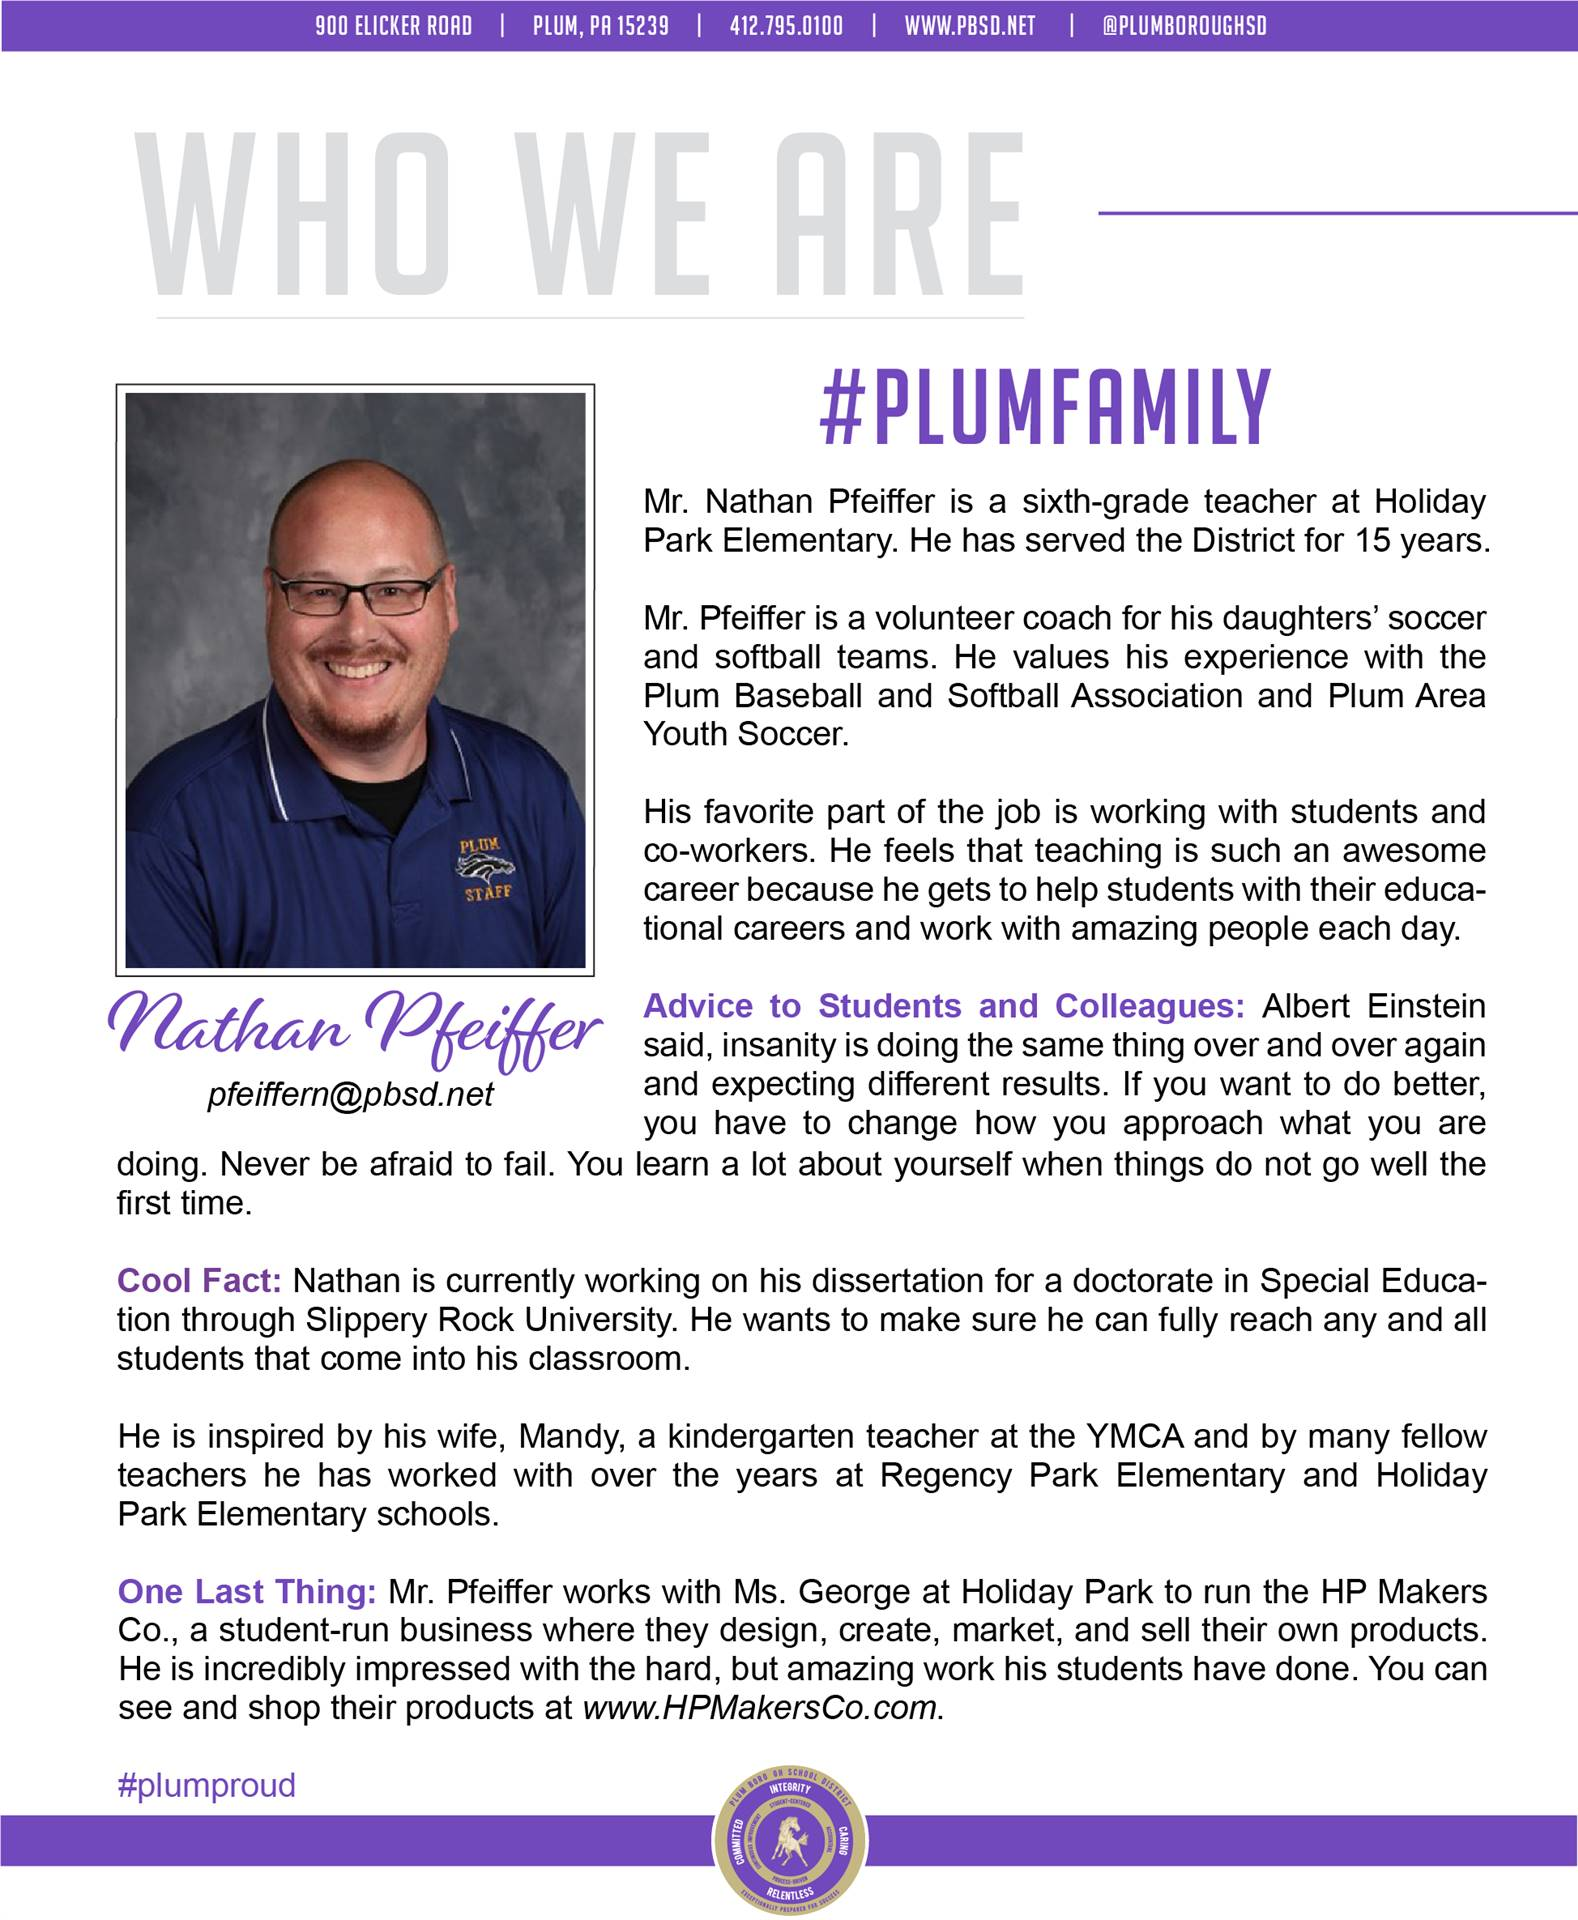 Who We Are Wednesday features Nathan Pfeiffer.